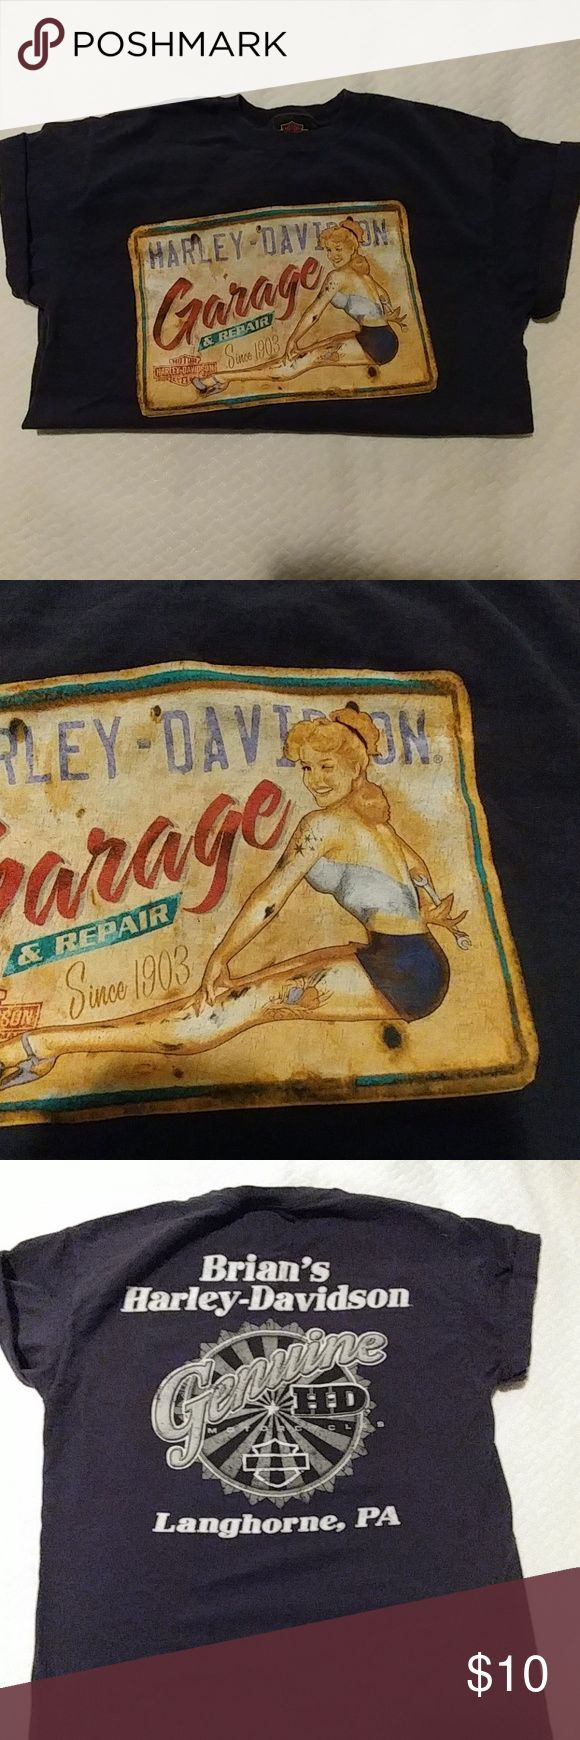 Harley Davidson T-Shirt Navy blue size medium ladies t-shiDr. Graphic is meant to look like a distressed metal sign. The shirt itself is in excellent condition. Harley-Davidson Tops Tees - Short Sleeve